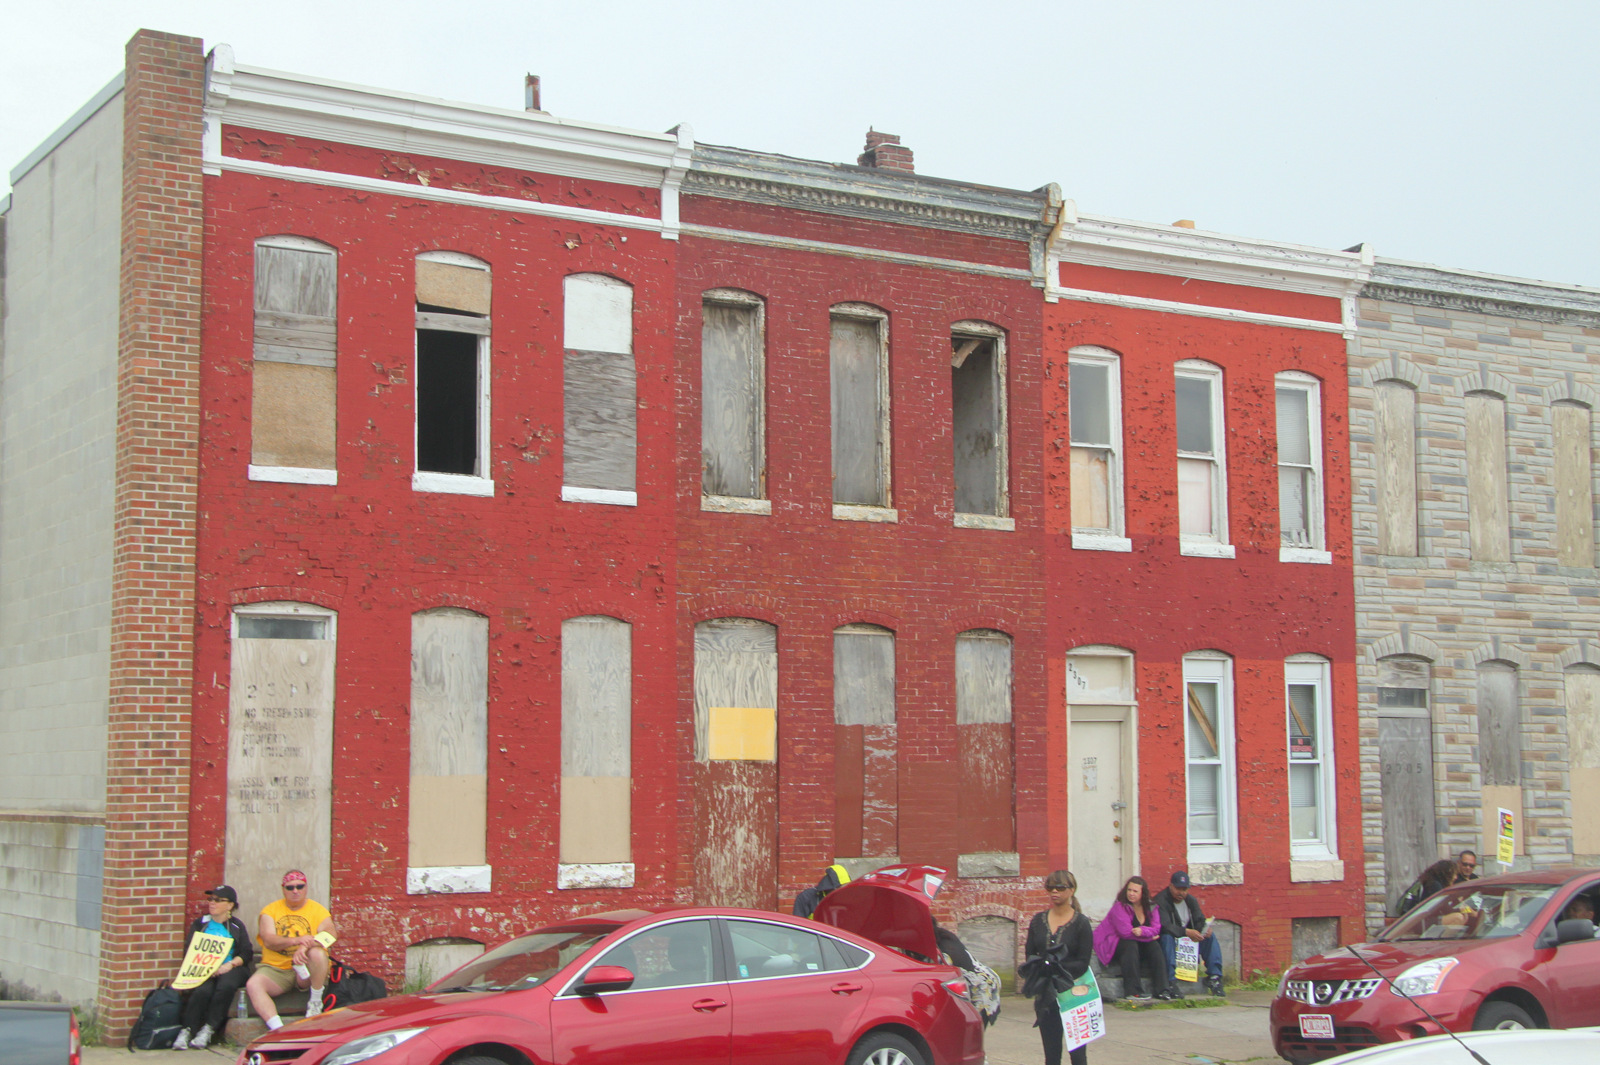 How East Biddle Street looked yesterday during rally. (Photo by Louie Krauss).